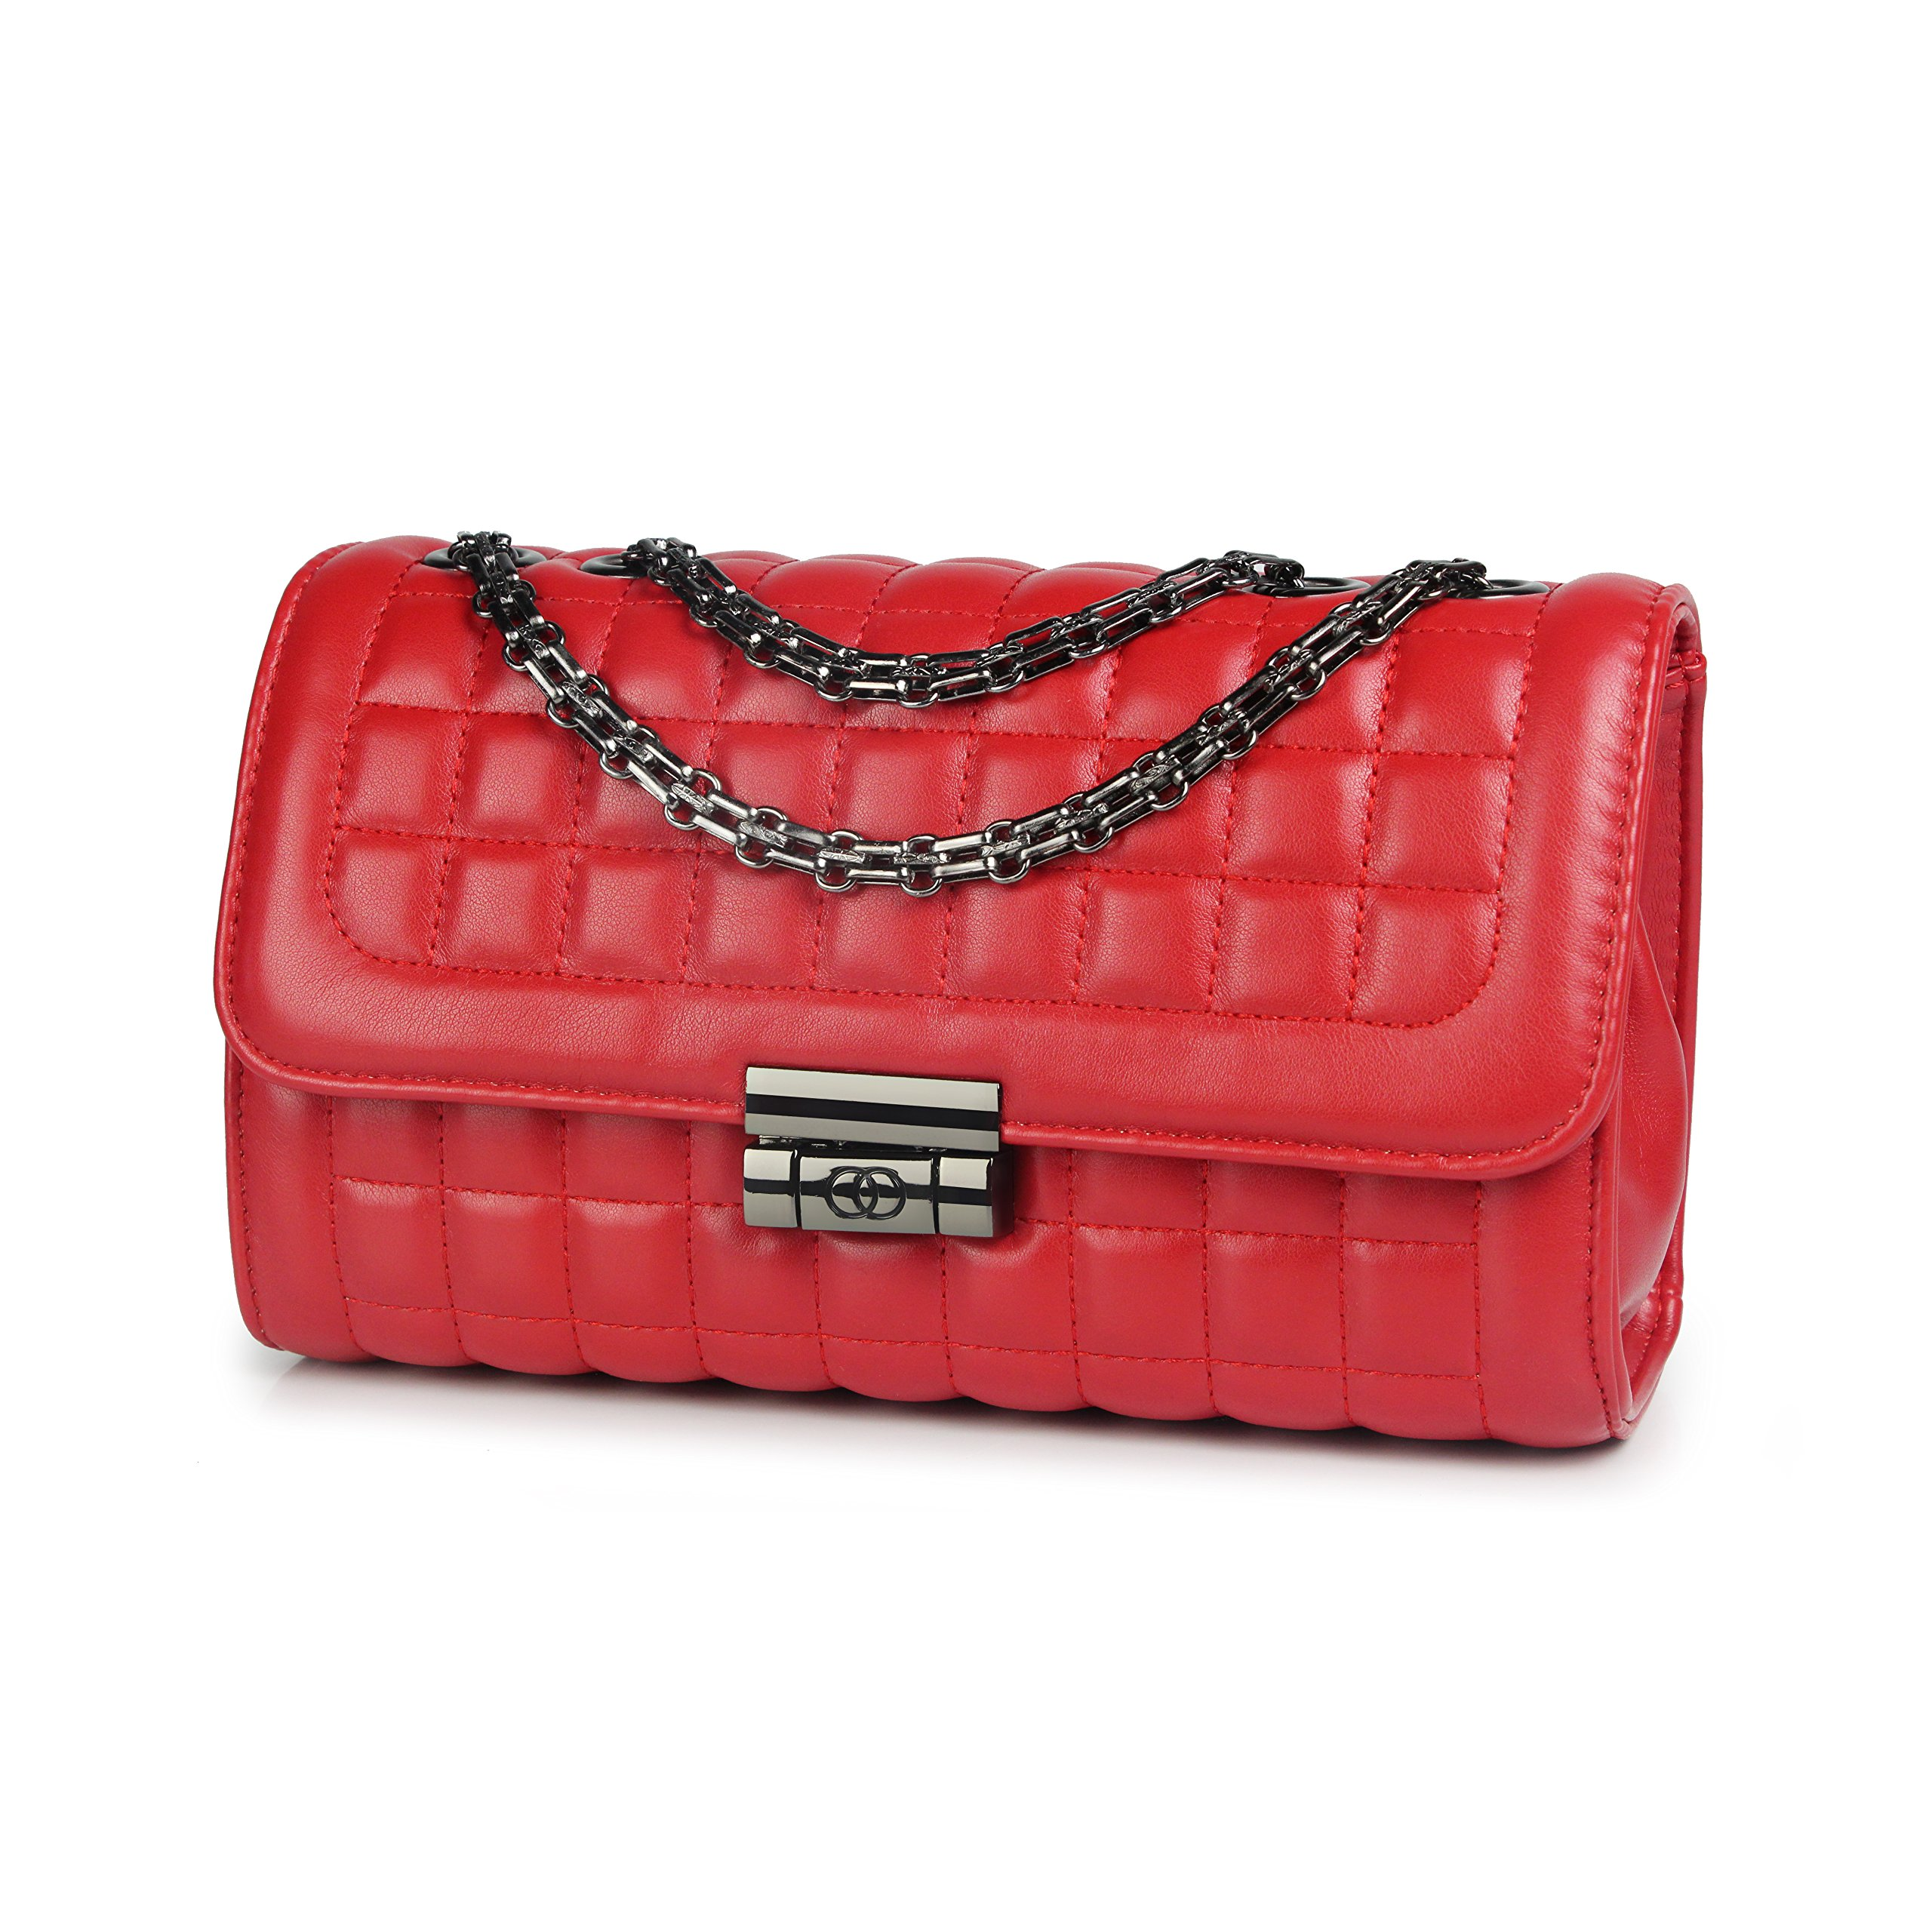 Women's Classic Quilted Crossbody Purse Shoulder Bags Metal Chain Satchel Handbags (Red)